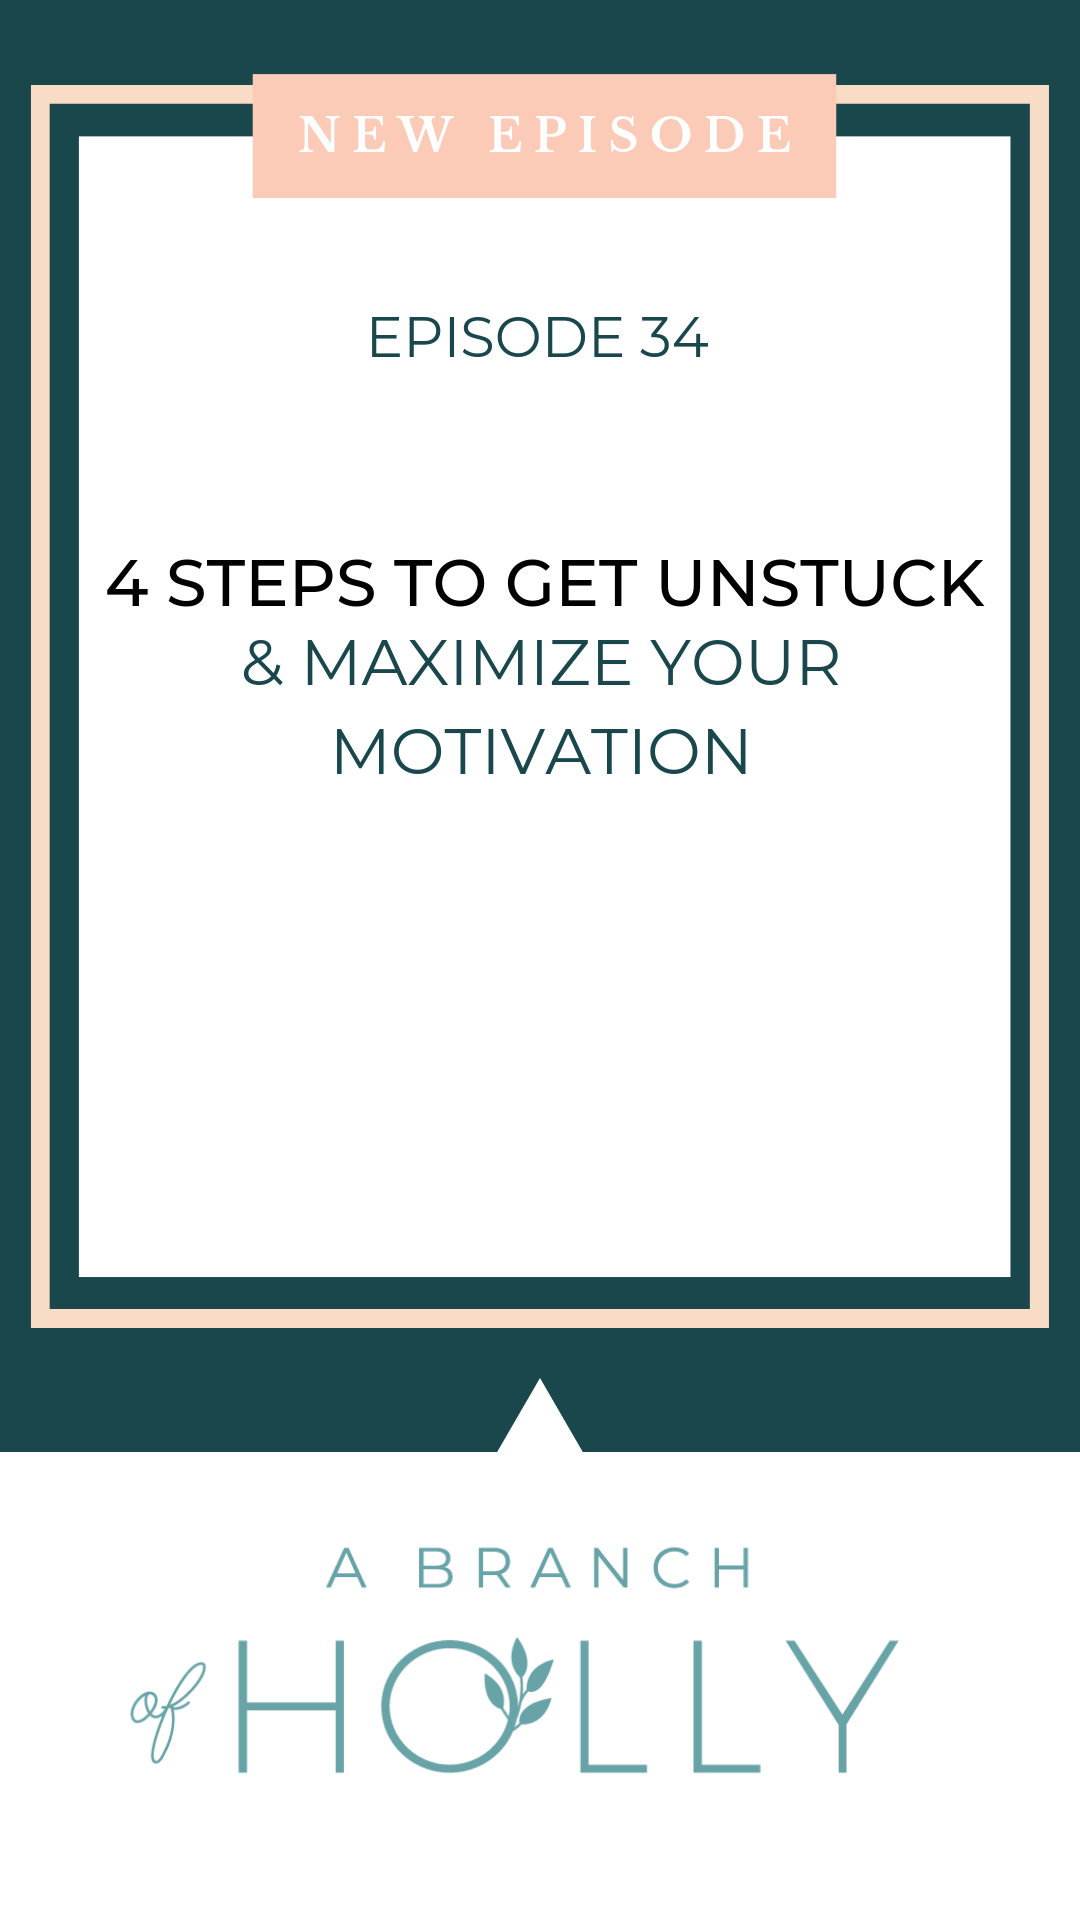 If you're feeling stuck in any area of your business, this episode is for you. With an excuse, there is always a way to get past it.   So let me walk you through how to start moving forward in the direction that you want to go. We are going to explore four areas that are likely keeping you stuck. There's always something we can do to get unstuck or to get motivated again. Click through to listen to the full episode and join the FREE 4-Day Mini Training Series! #motivation #entrepreneur #businessowner